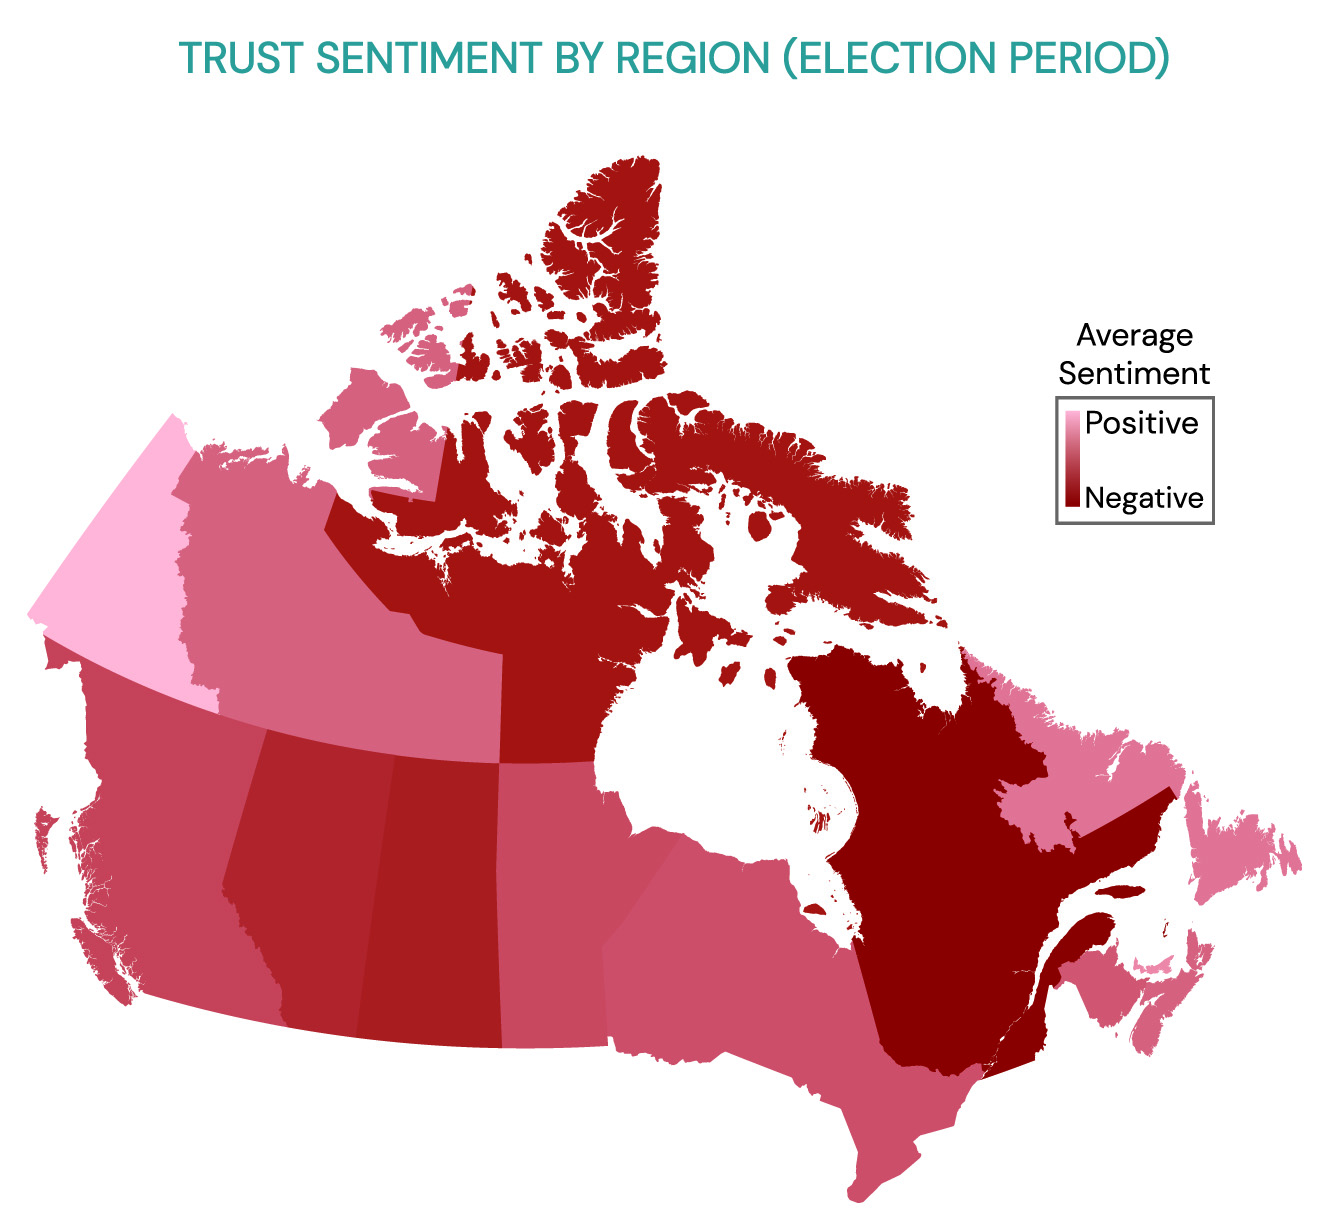 map of Canada showing trust-sentiment levels